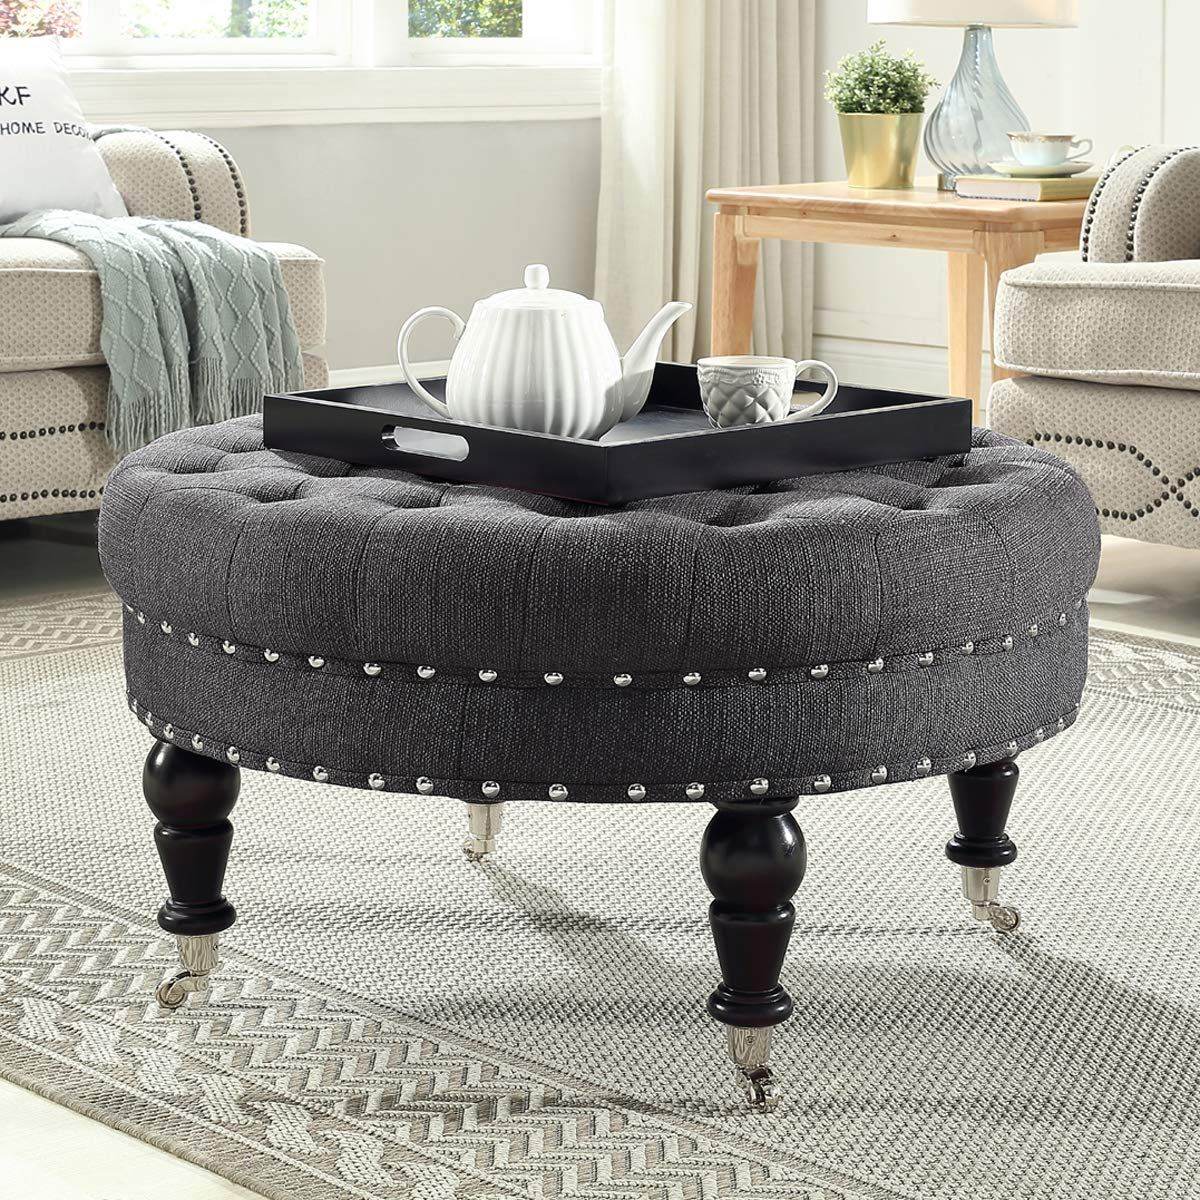 24kf Large Round Upholstered Tufted Button Linen Ottoman Coffee Table Large Footrest Bench With Caters Rolli Ottoman Coffee Table Linen Ottoman Ottoman Coffee [ jpg ]